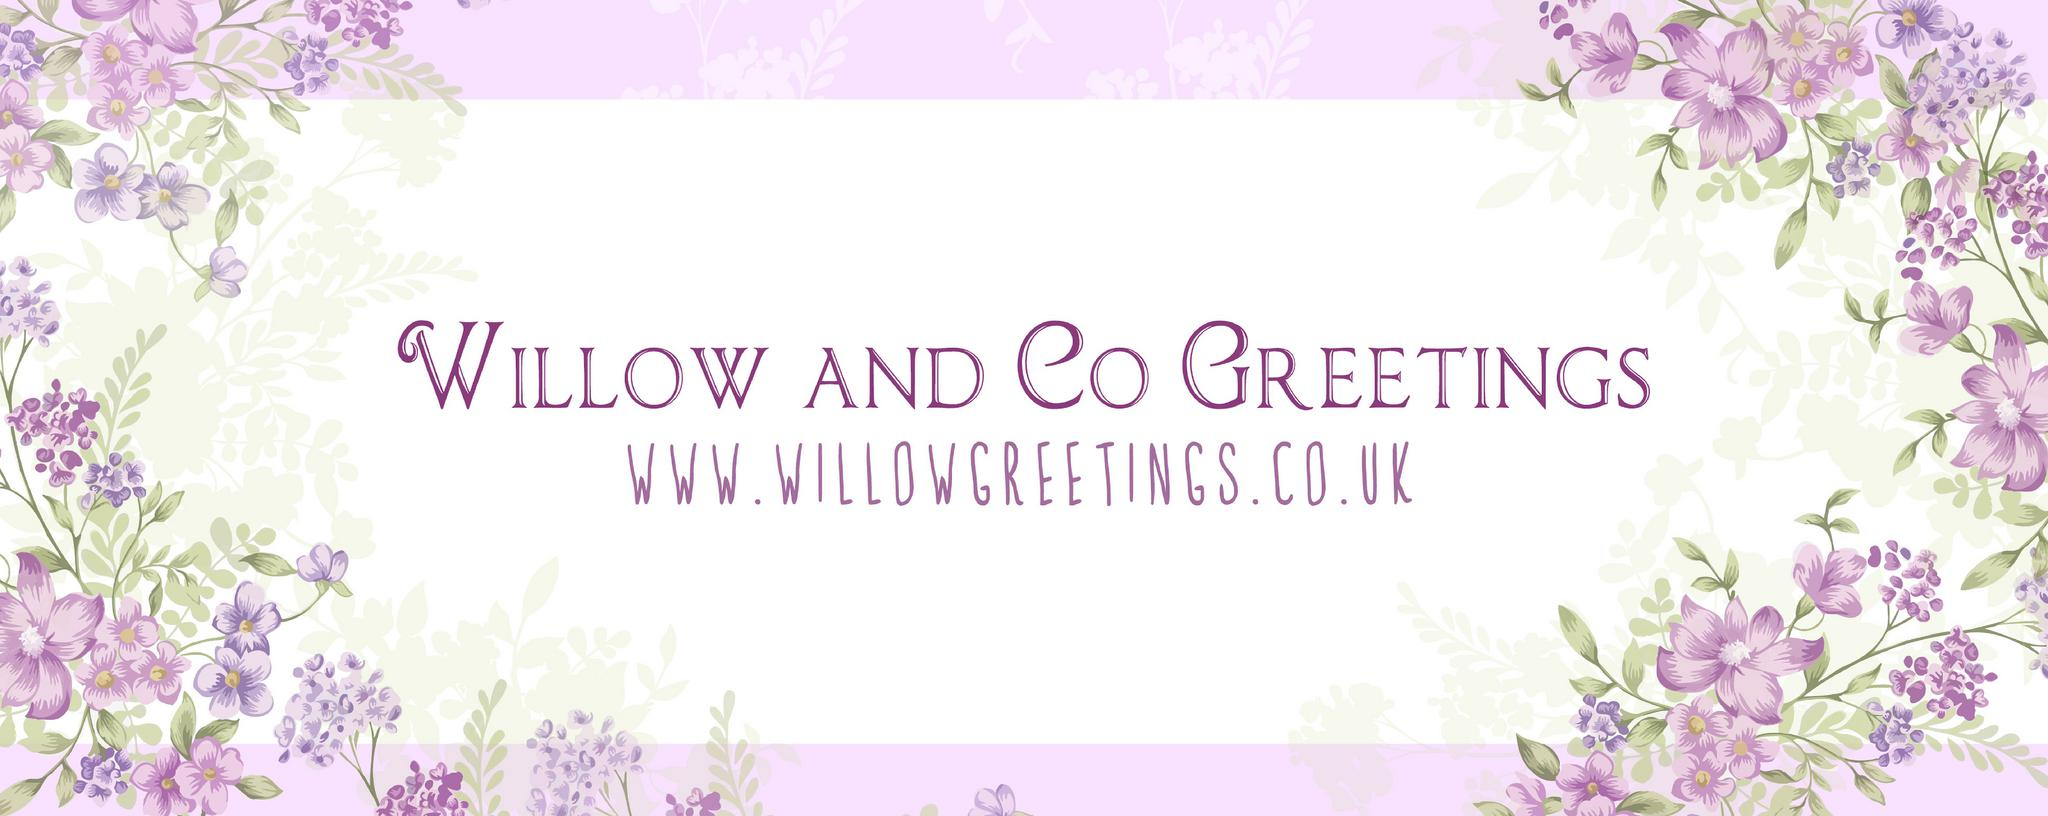 Willow & Co Greetings